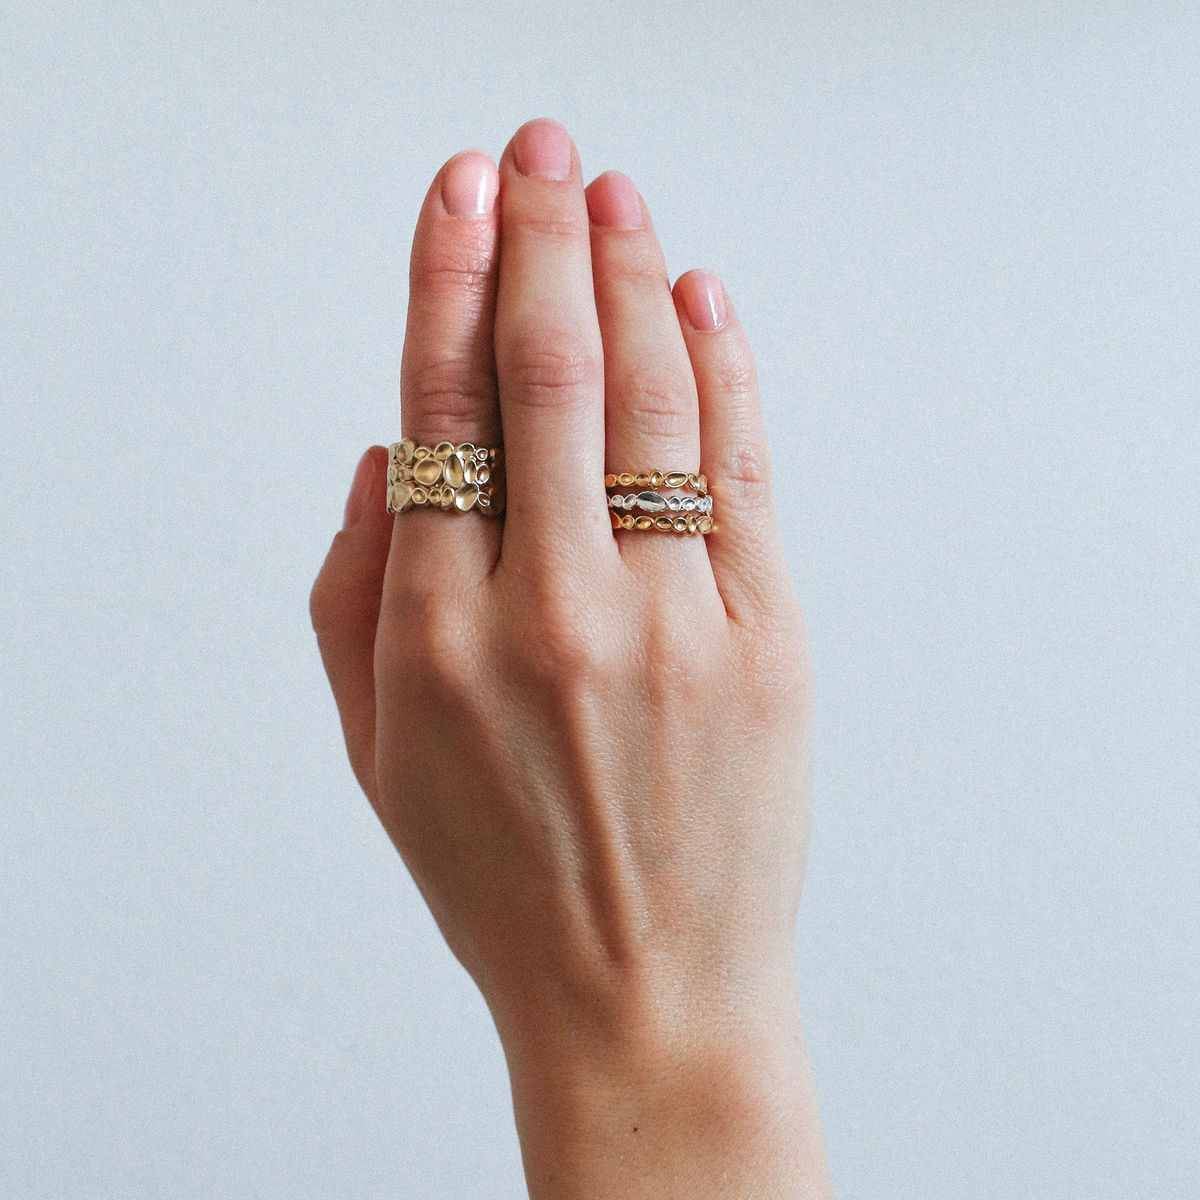 SHIMMER textured wide ring - gold plated sterling silver - product images  of